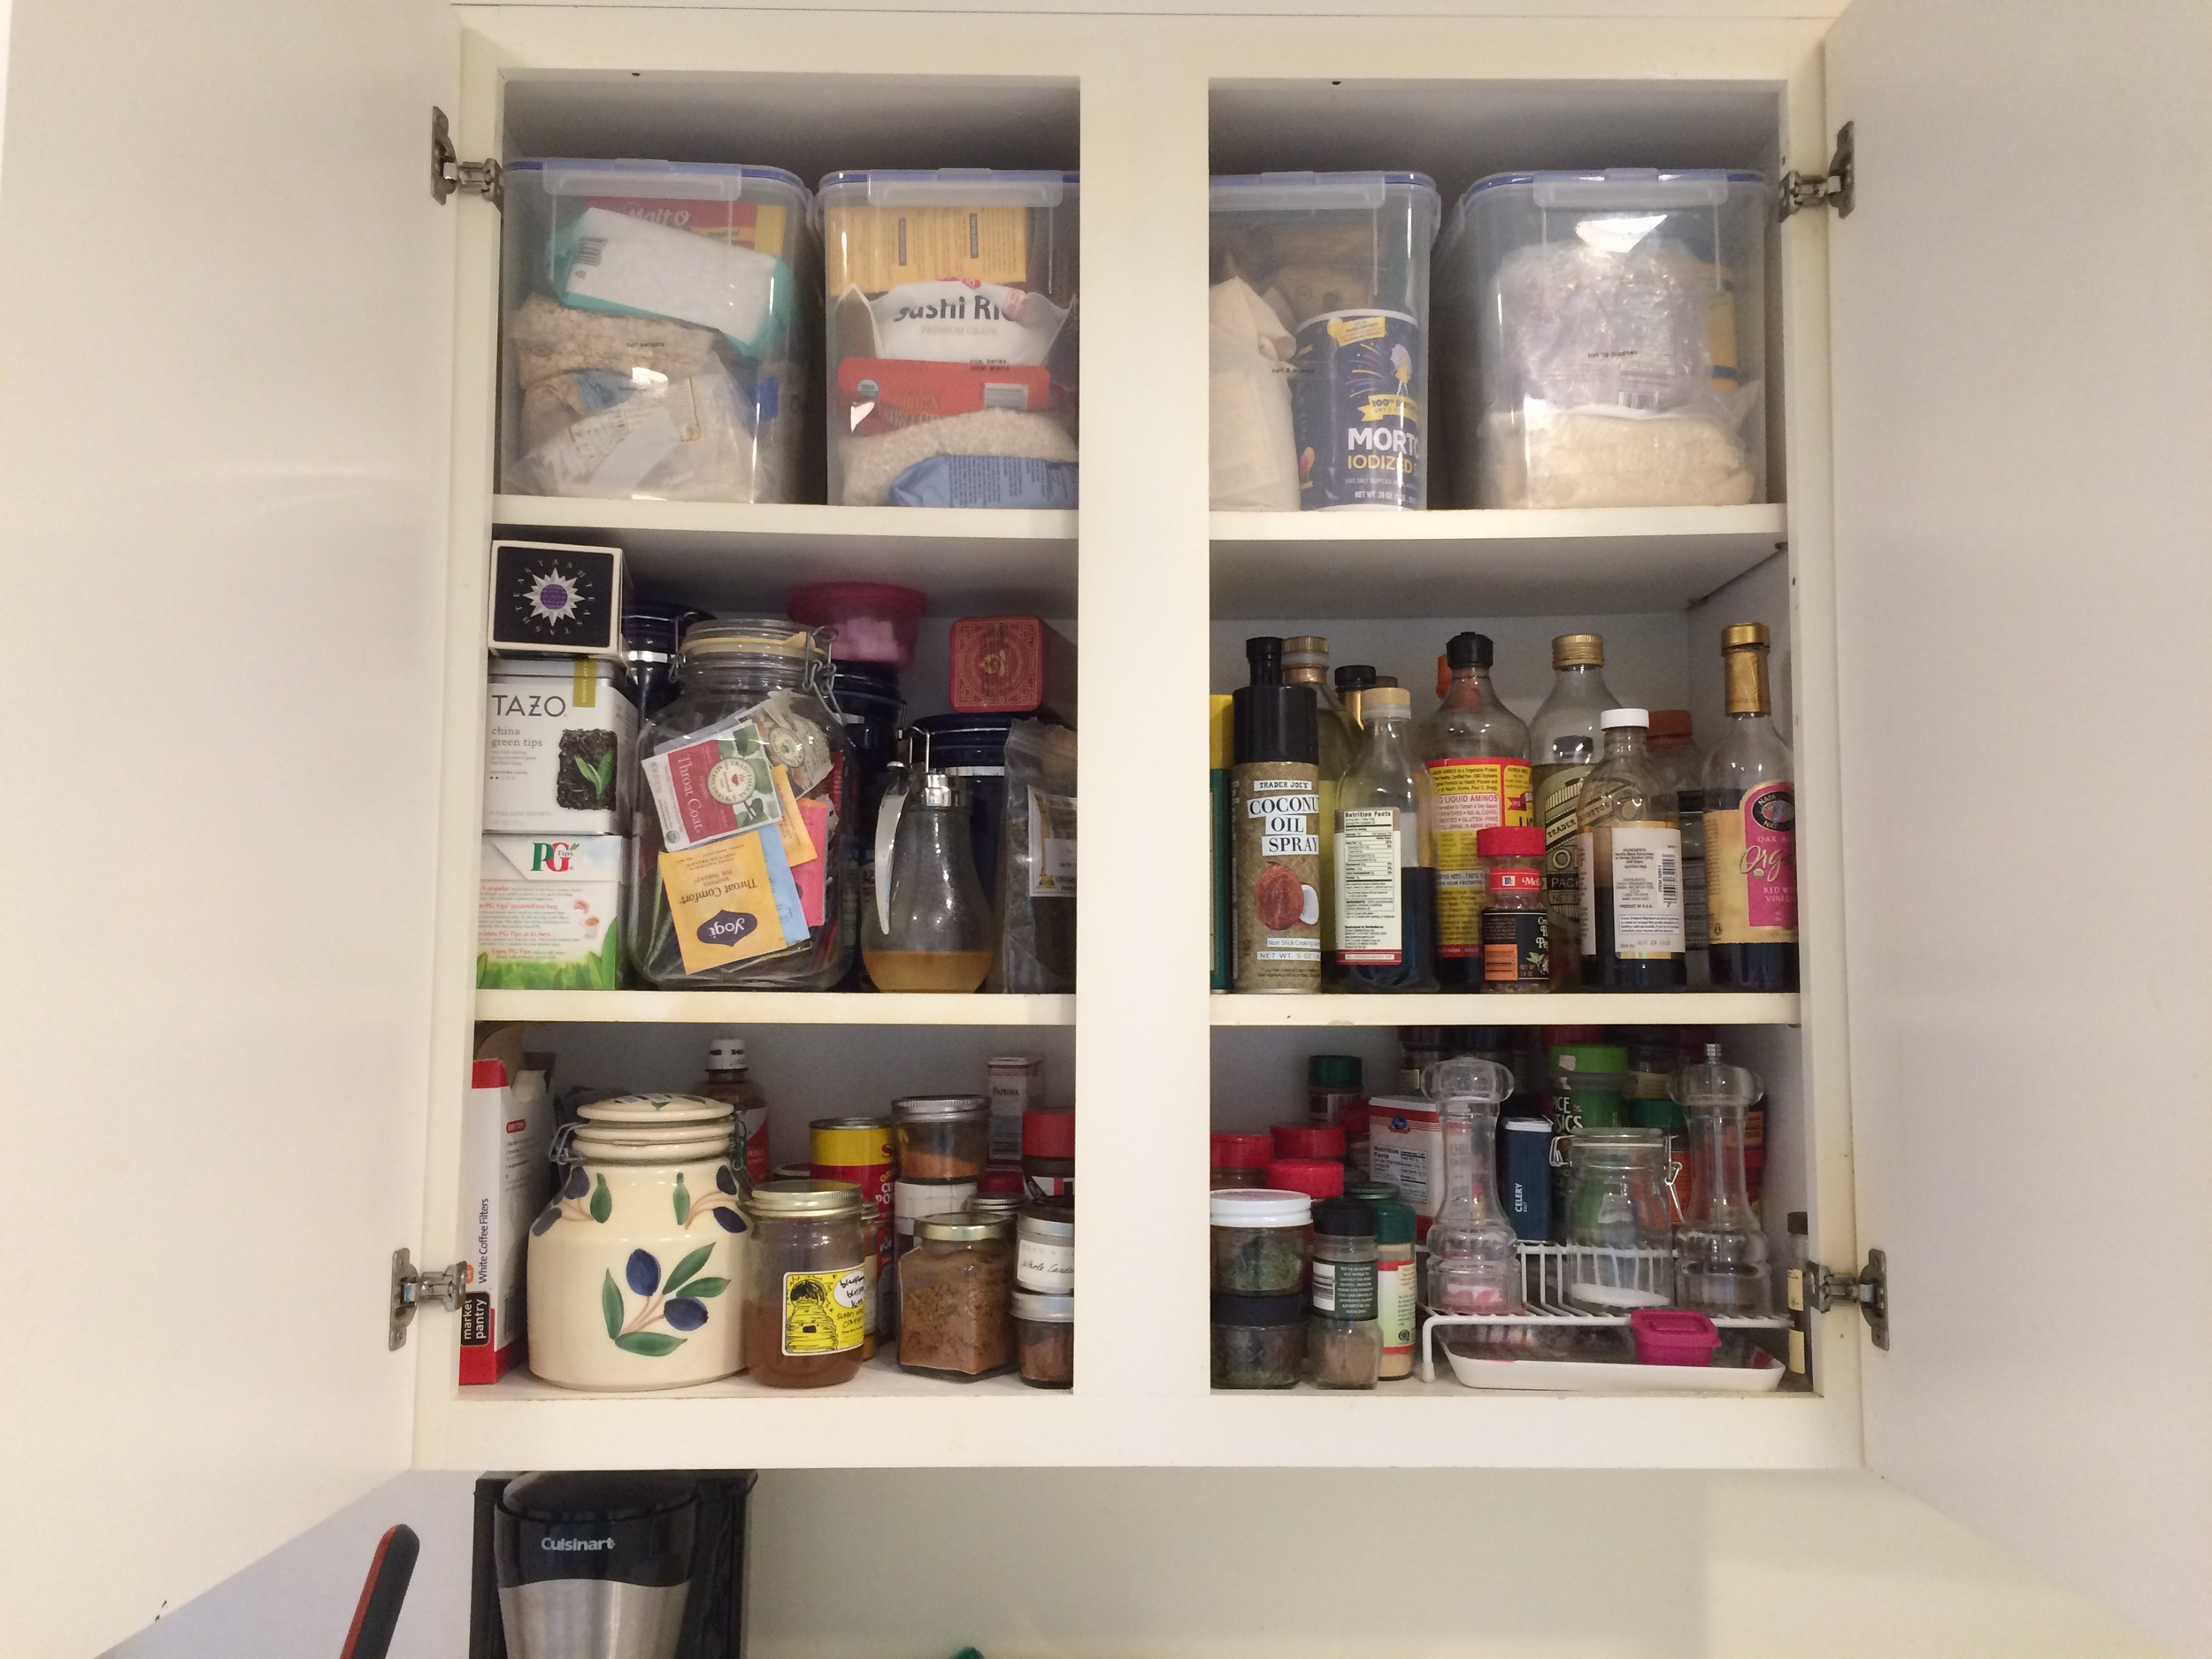 I have one upper cabinet to the left of the stove that has some cooking supplies - seasonings, oils, vinegars.  The containers at the top have baking supplies, rice, hot cereals.  And this is where we keep the coffee and tea.